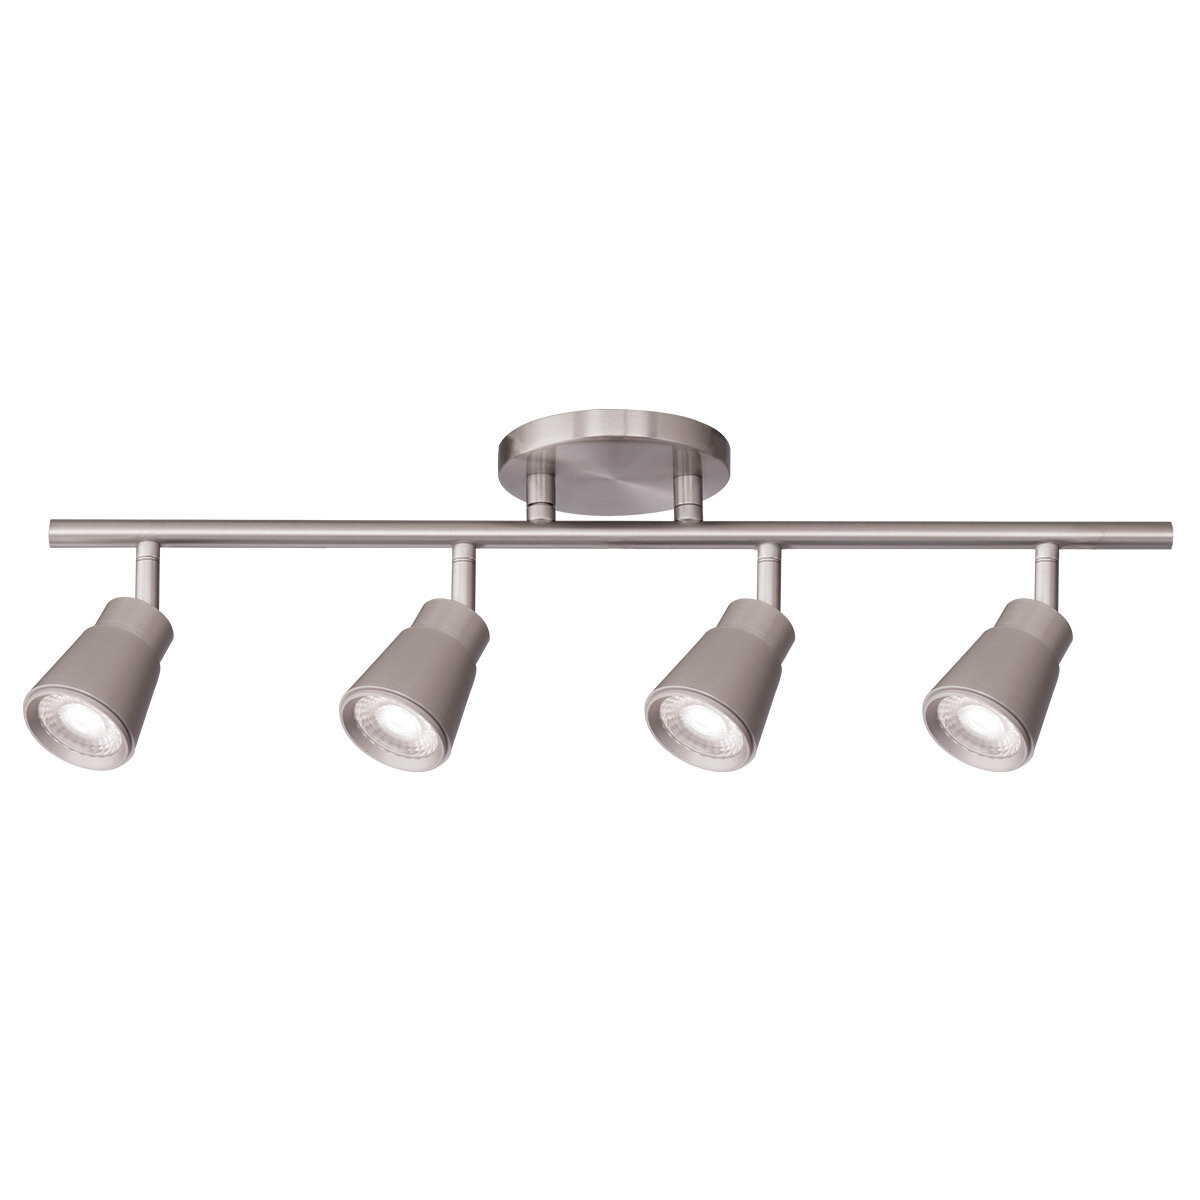 Wac Limited Solo Led Energy Star 4